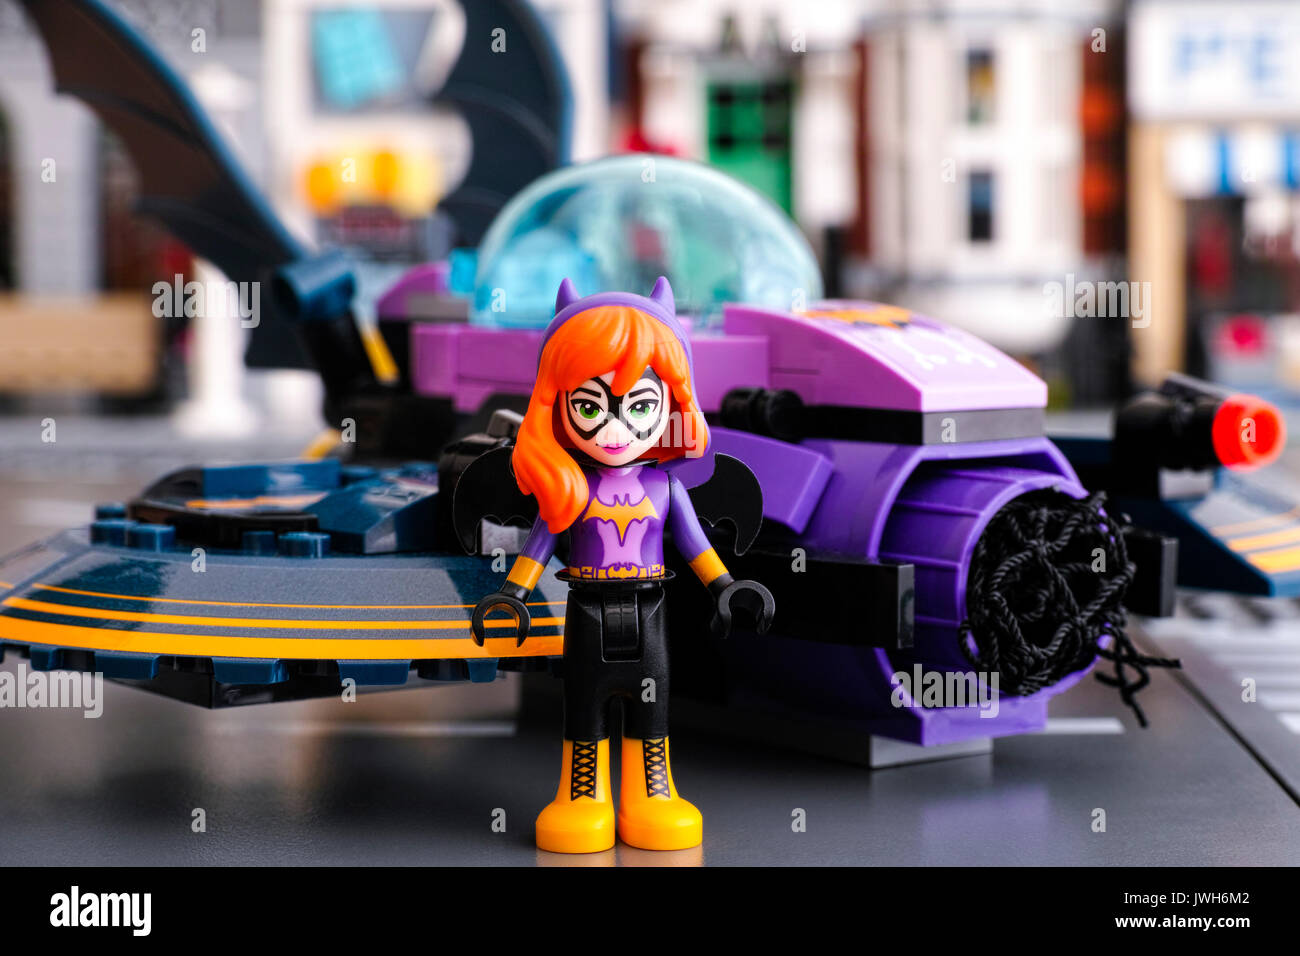 Tambov, Russian Federation - March 04, 2017 Lego DC Super Hero Batgirl mini-doll figure standing in front of his Stock Photo